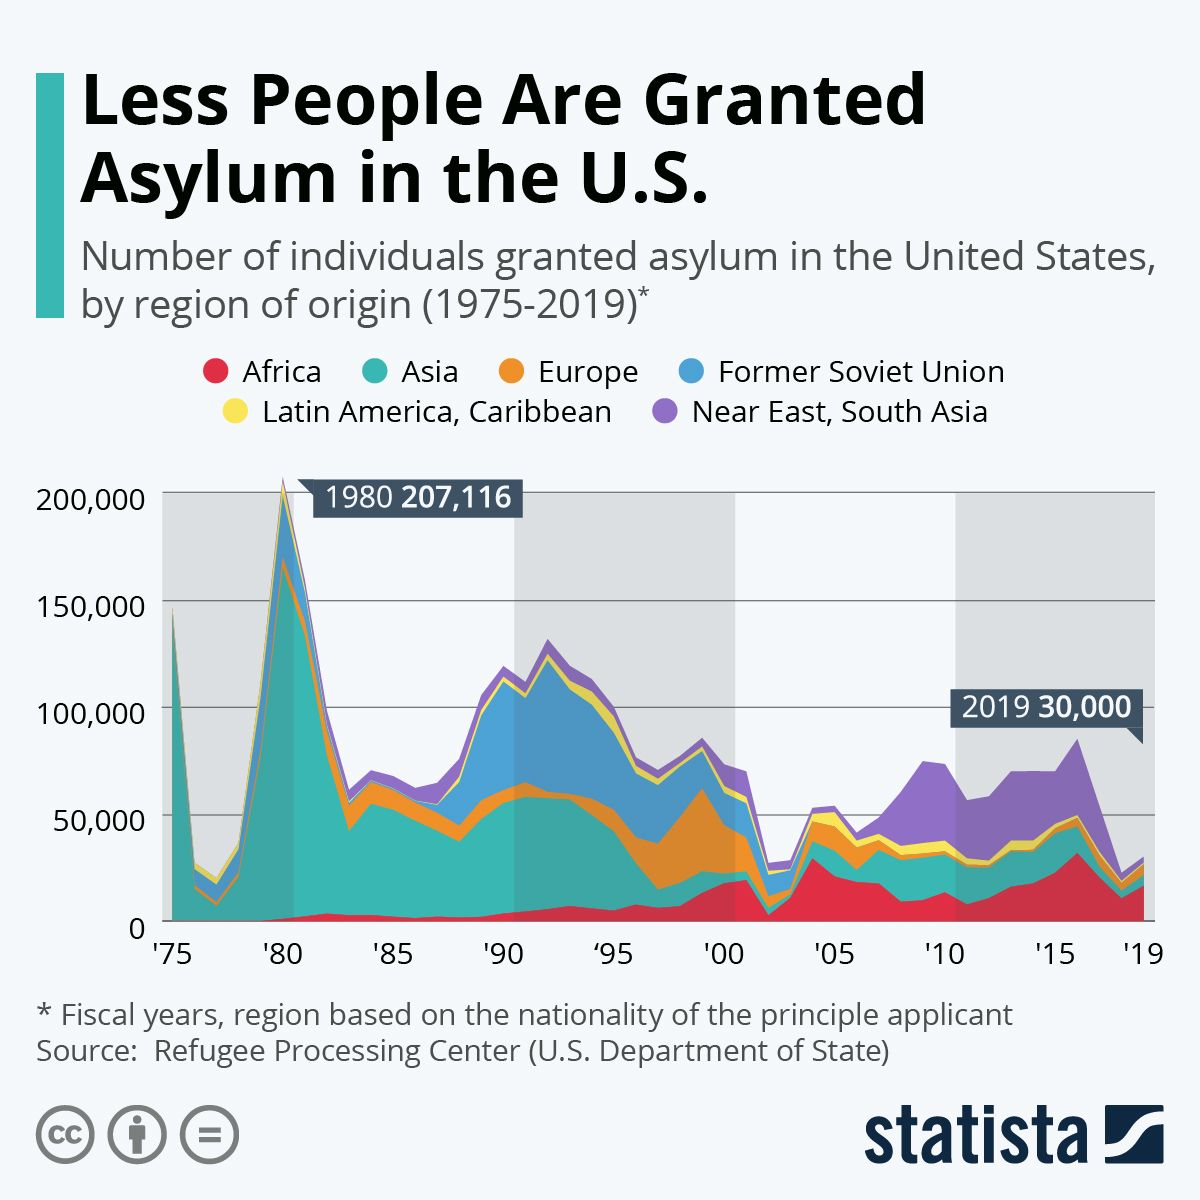 Less People Are Granted Asylum in the U.S. in 2020